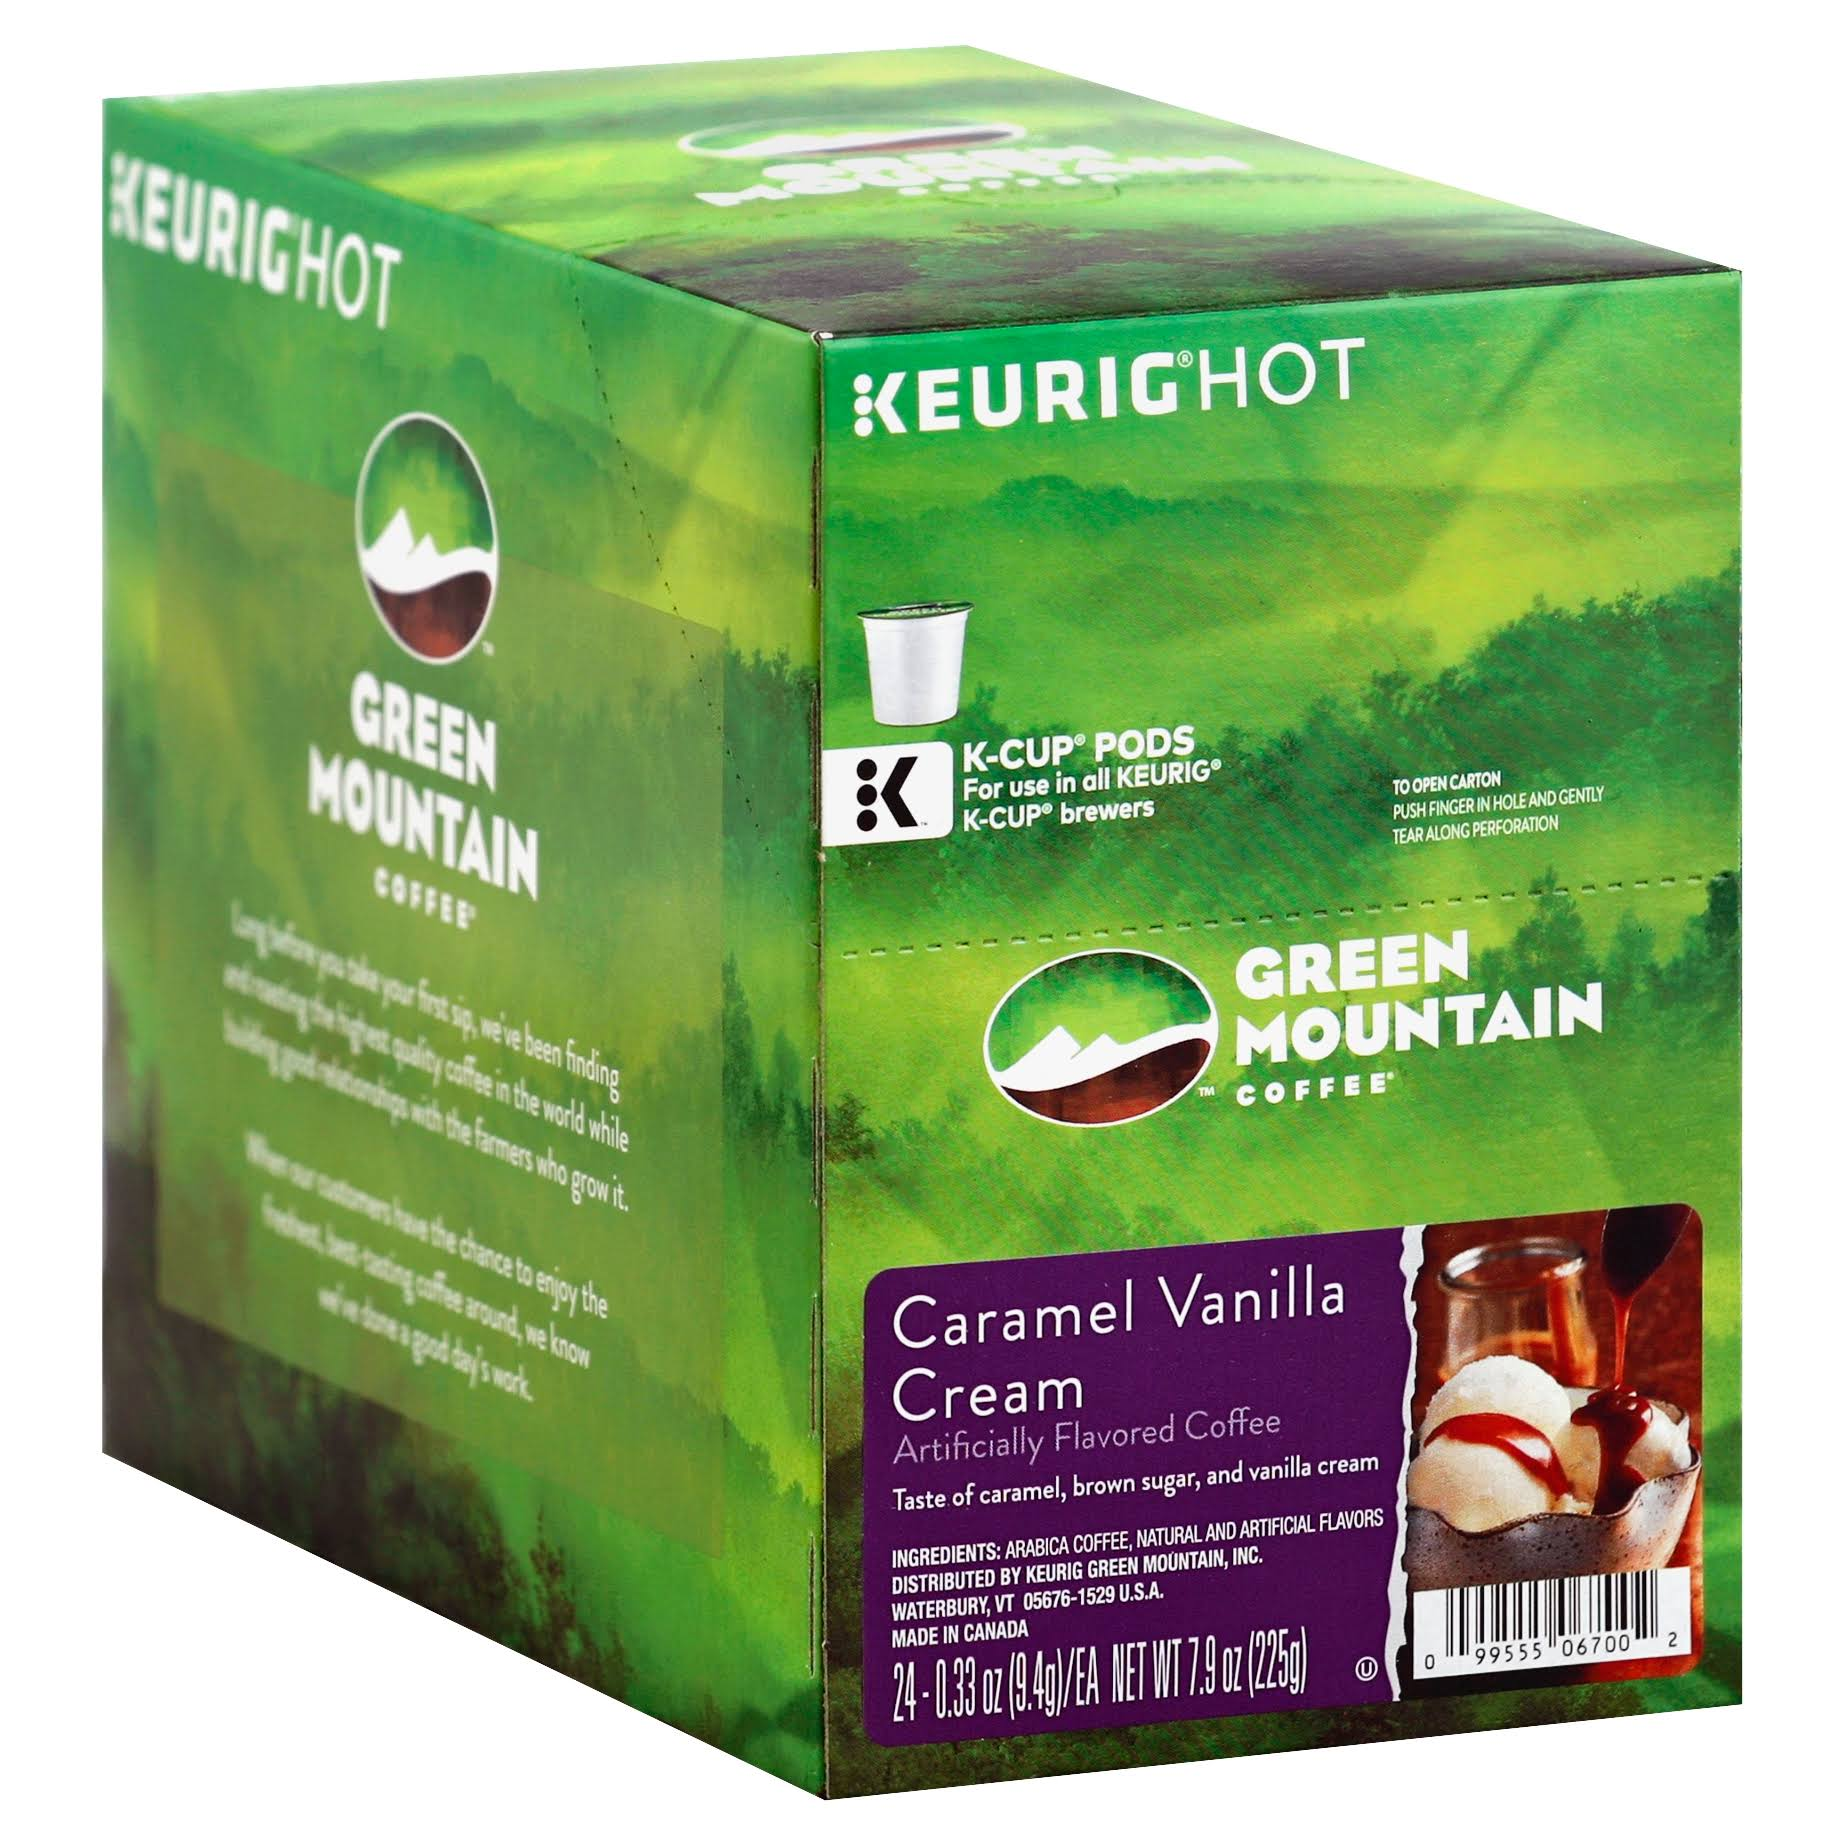 Green Mountain K Cups Coffee - Caramel Vanilla Cream, 12ct